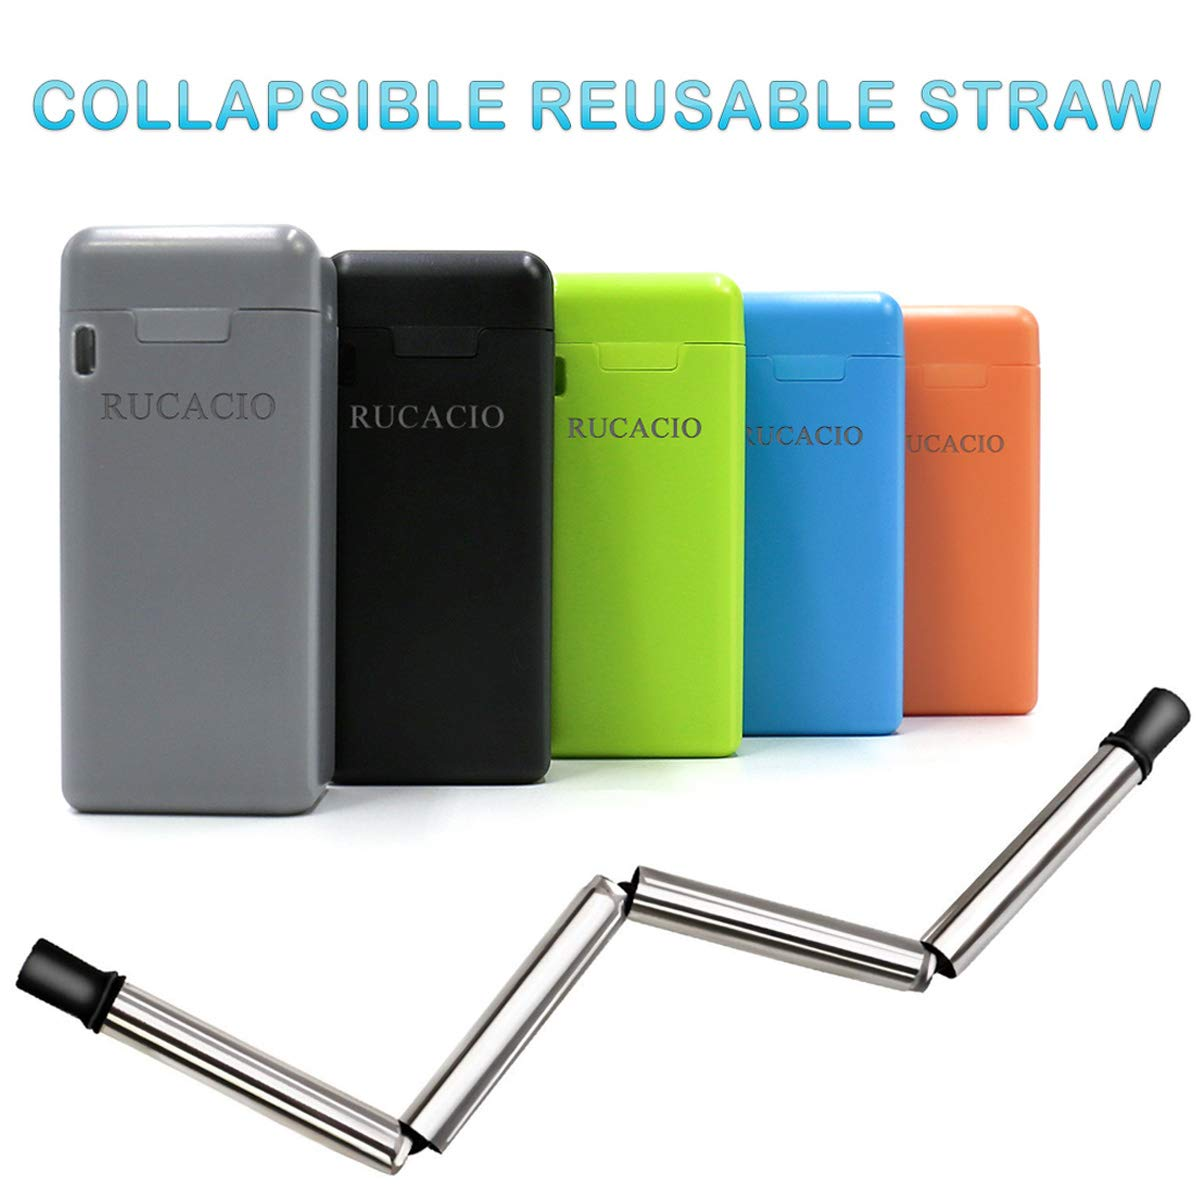 Collapsible Reusable Straws Stainless Straw-RUCACIO Medical-grade  Food-grade Drinking Straws